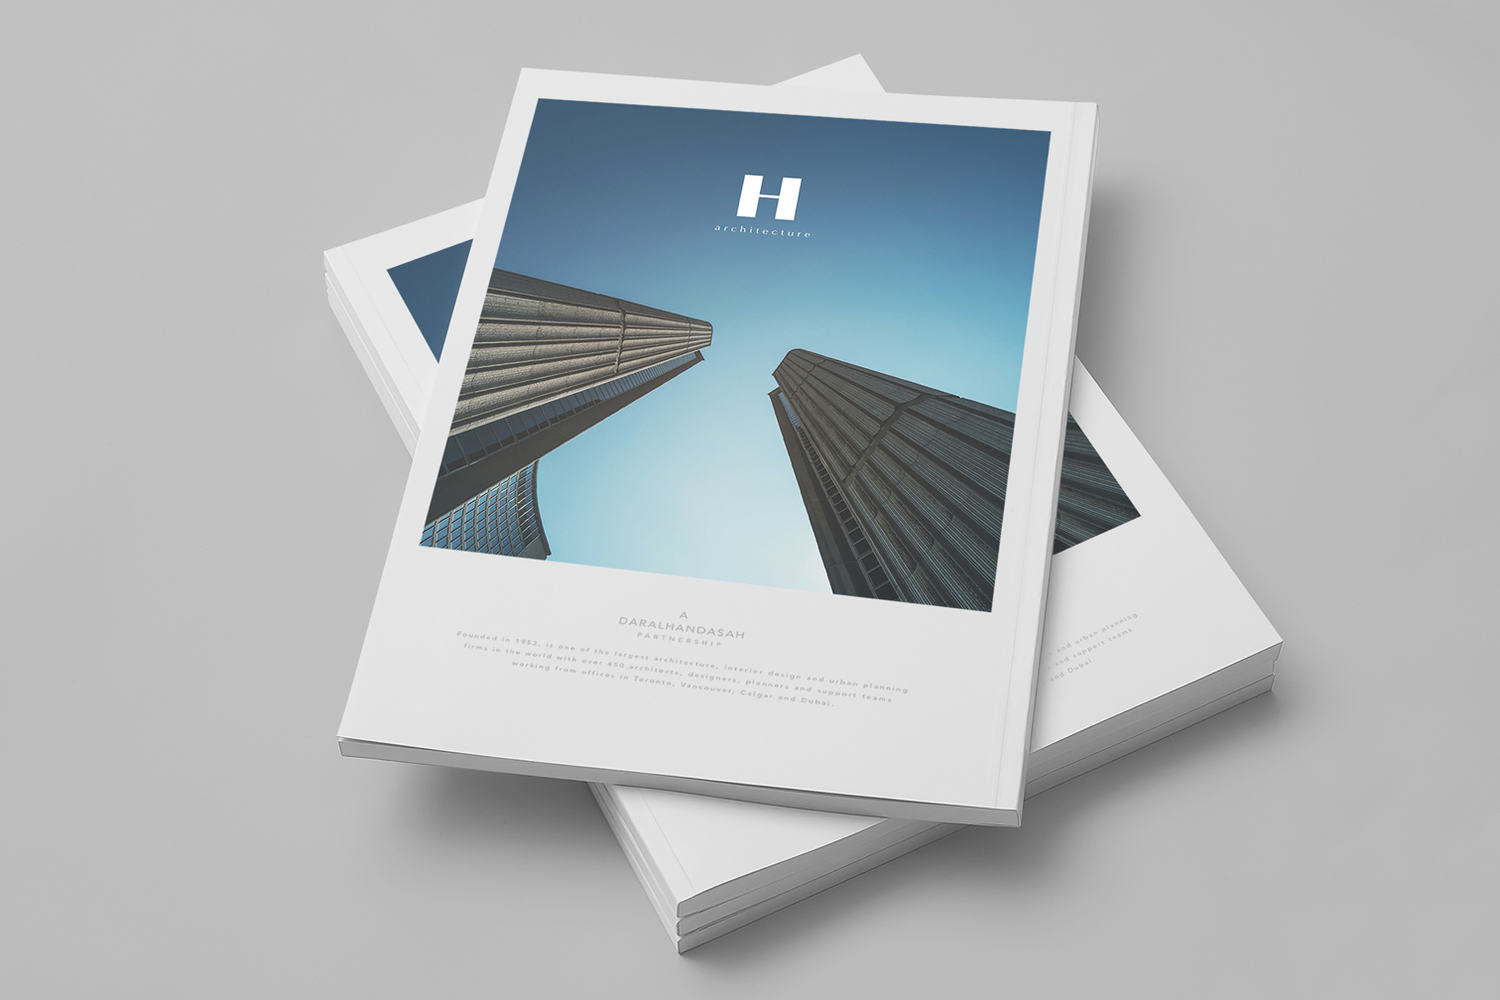 Marketing Collateral for Daral Handasah Architecture